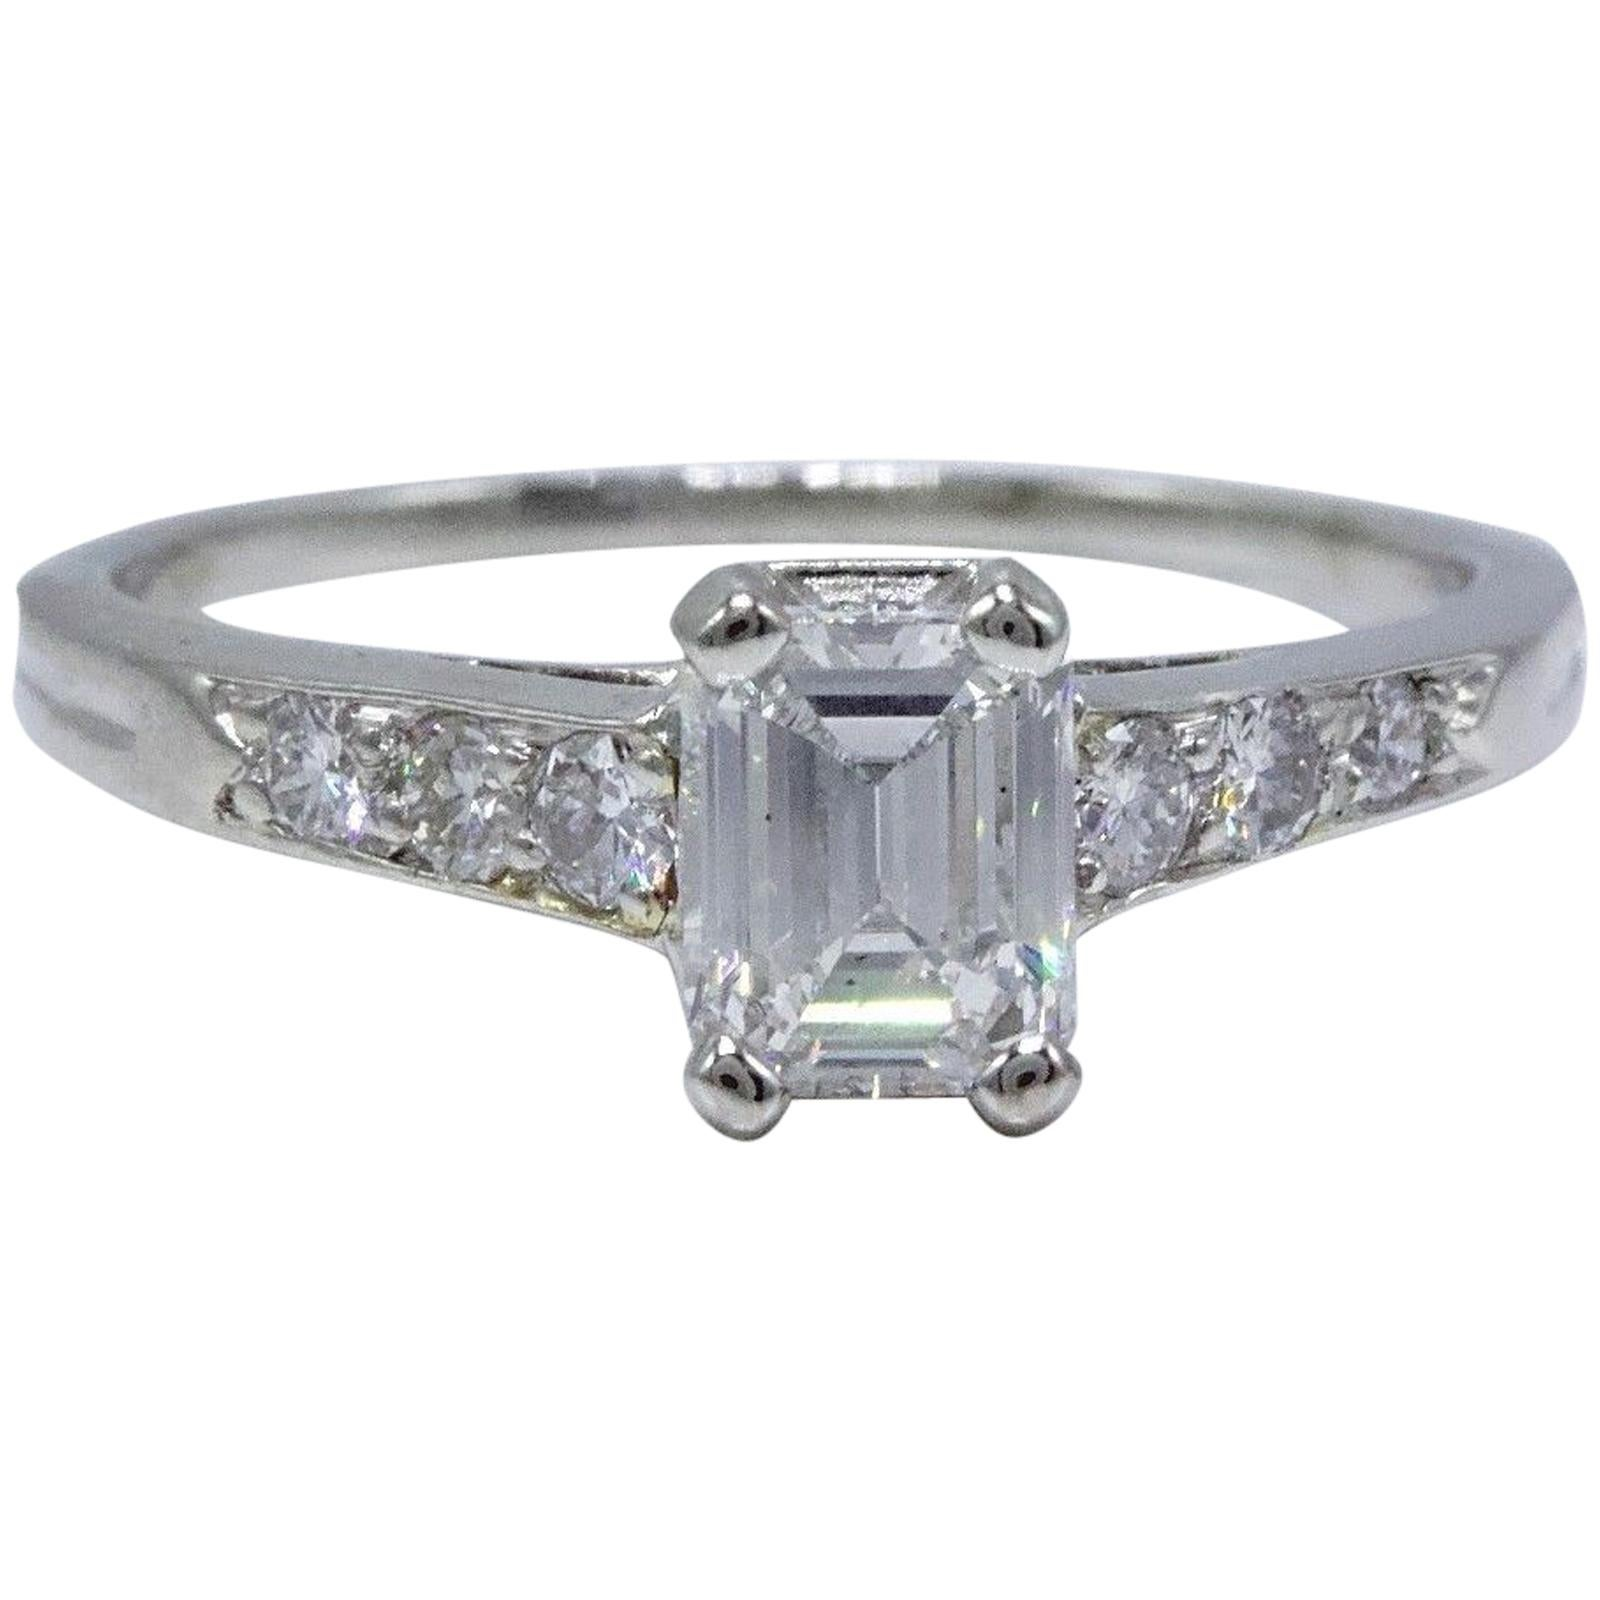 Tiffany Co Engagement Rings 289 For Sale At 1stdibs Page 2